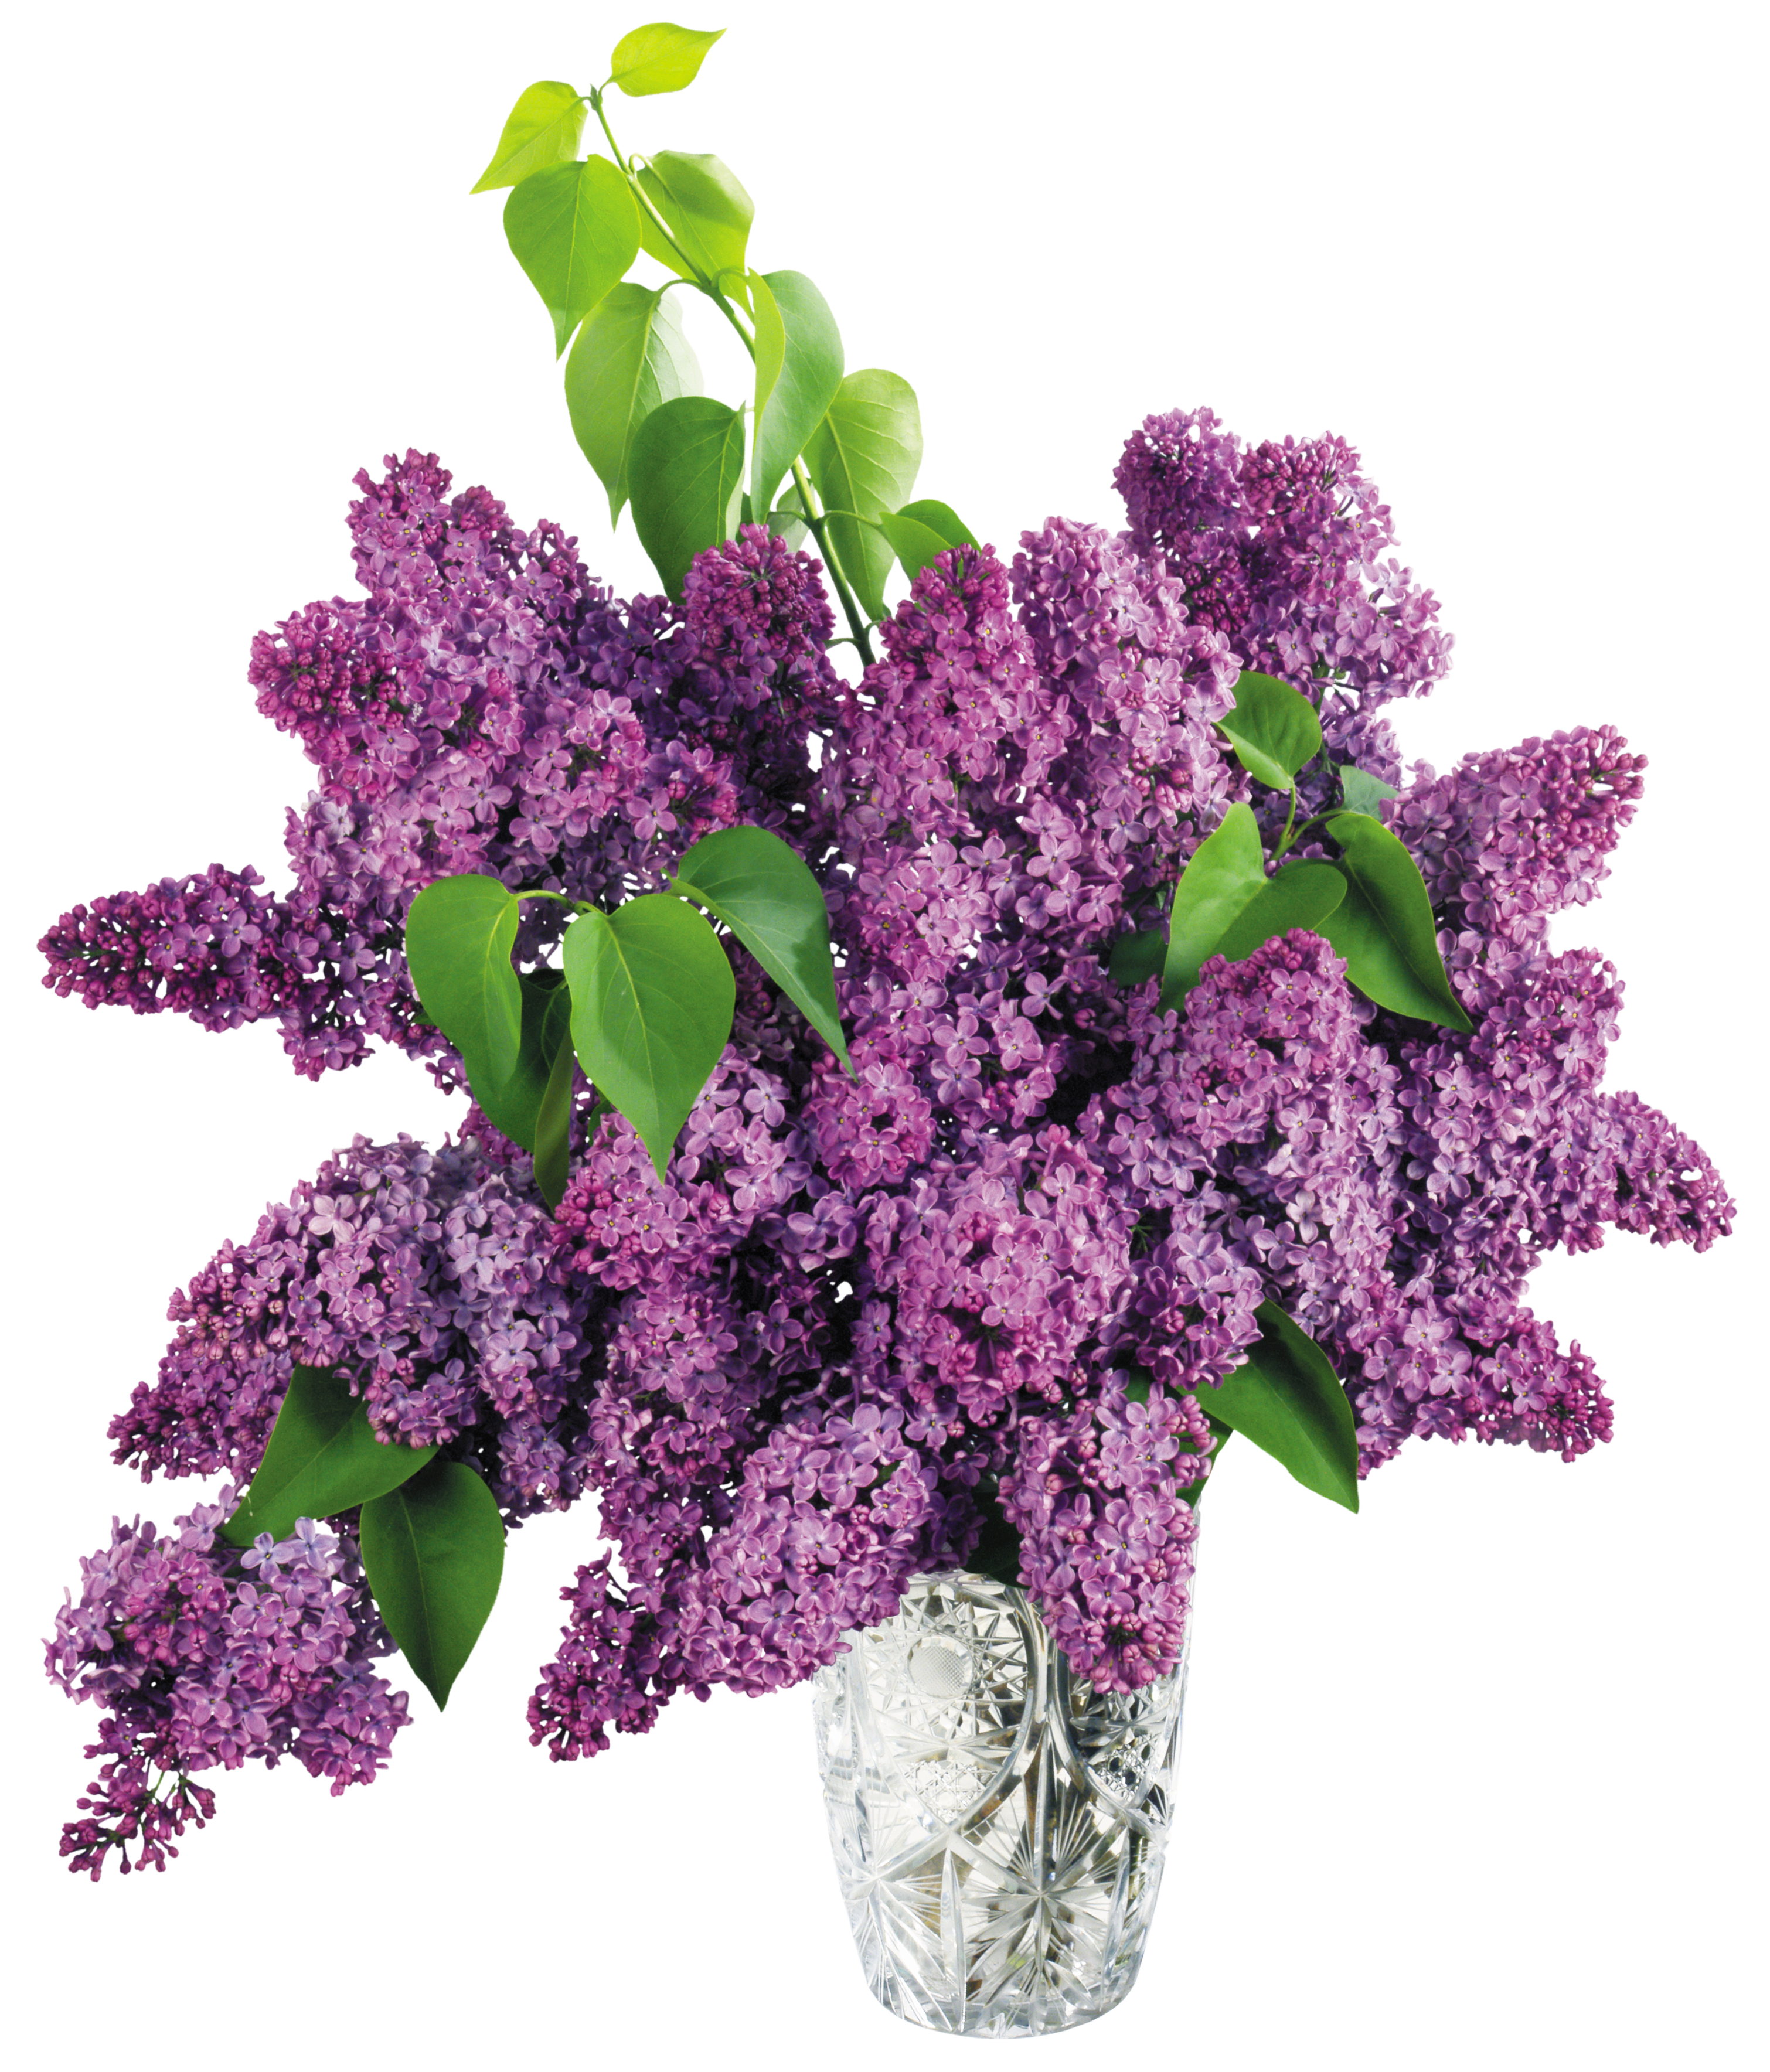 graphic library stock With purple lilac png. Violet clipart vase